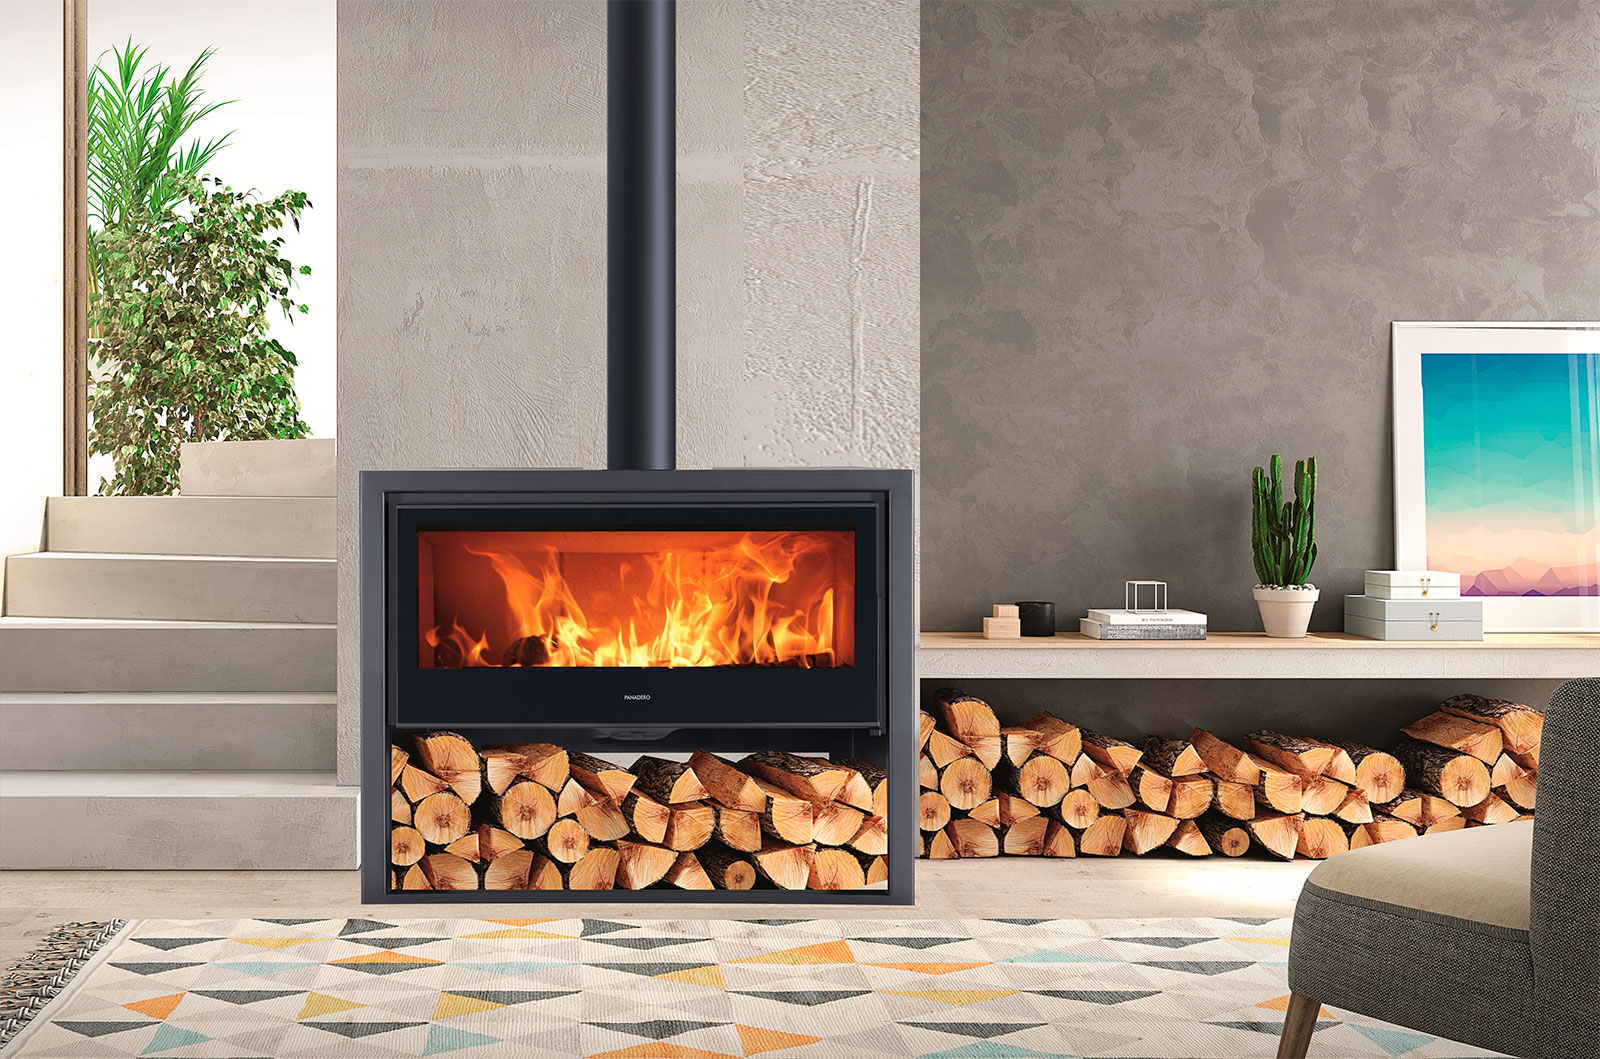 How a woodstove works